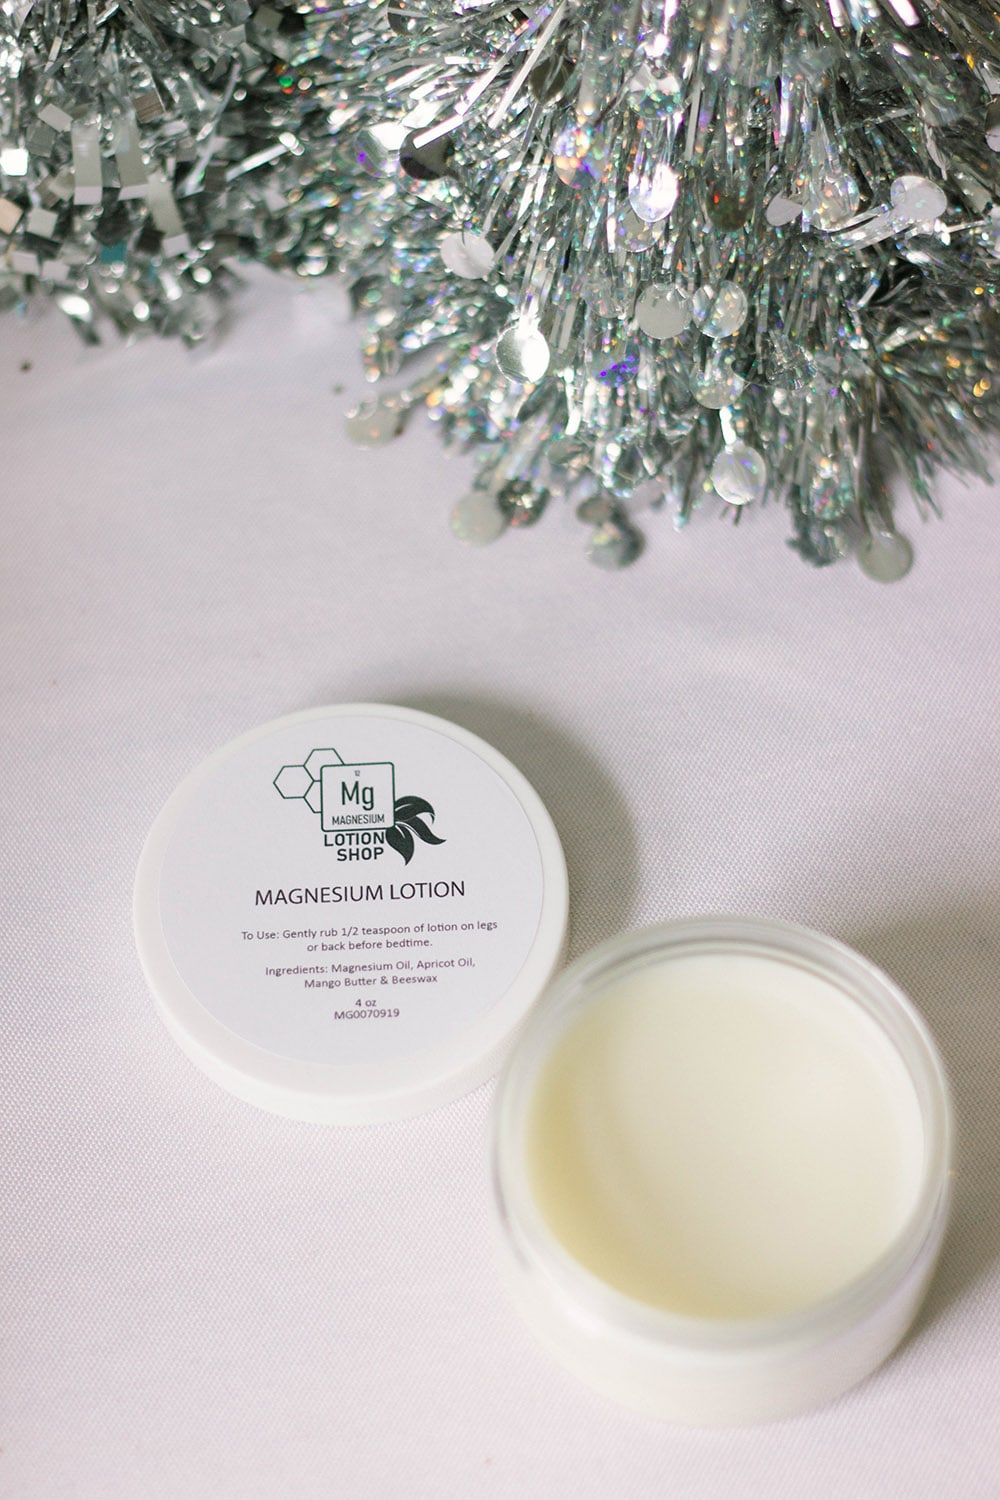 magnesium lotion in a little tub by a silver tree